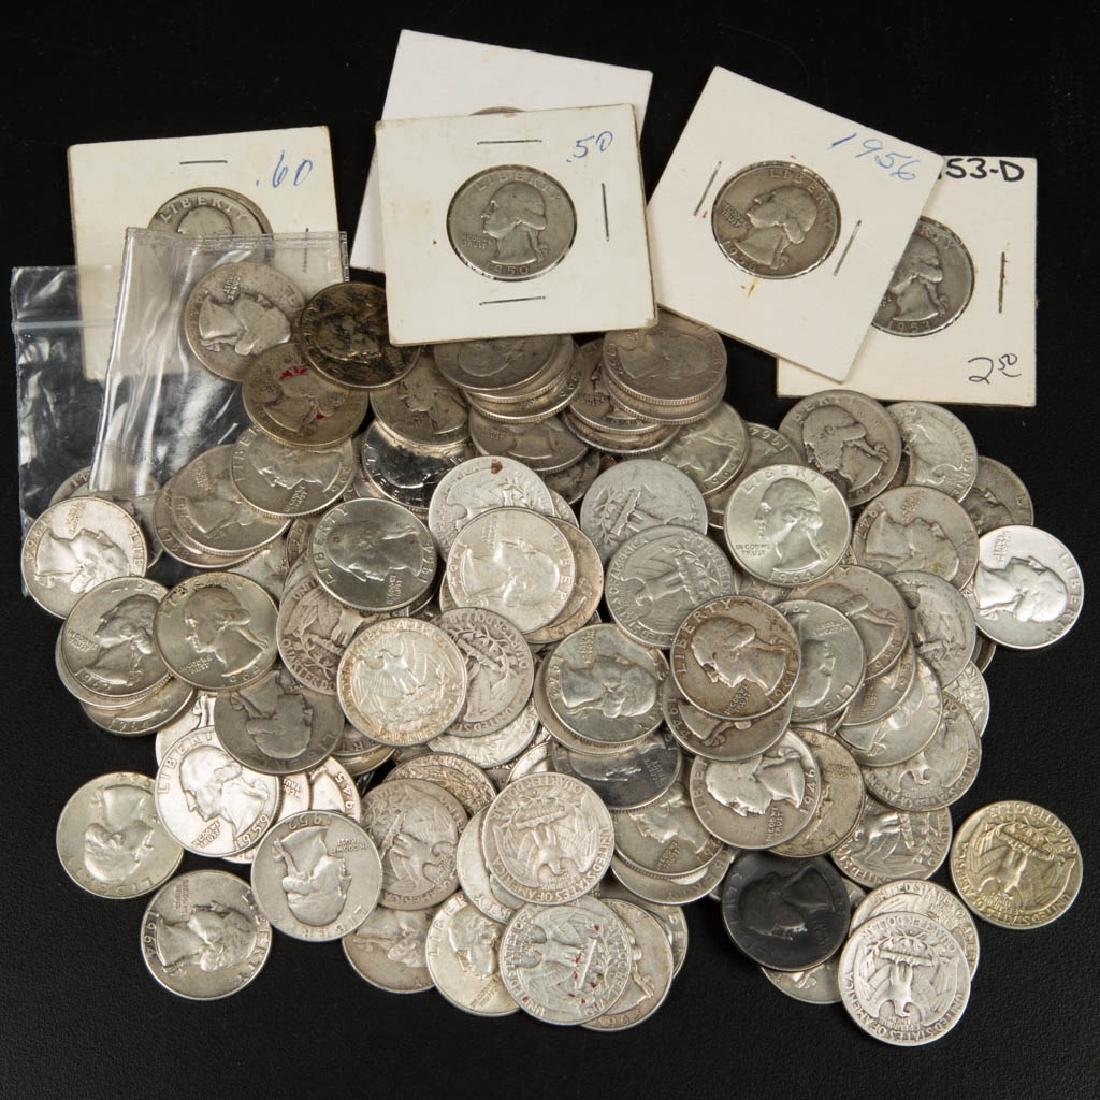 UNITED STATES SILVER WASHINGTON 25C COINS, LOT OF 132